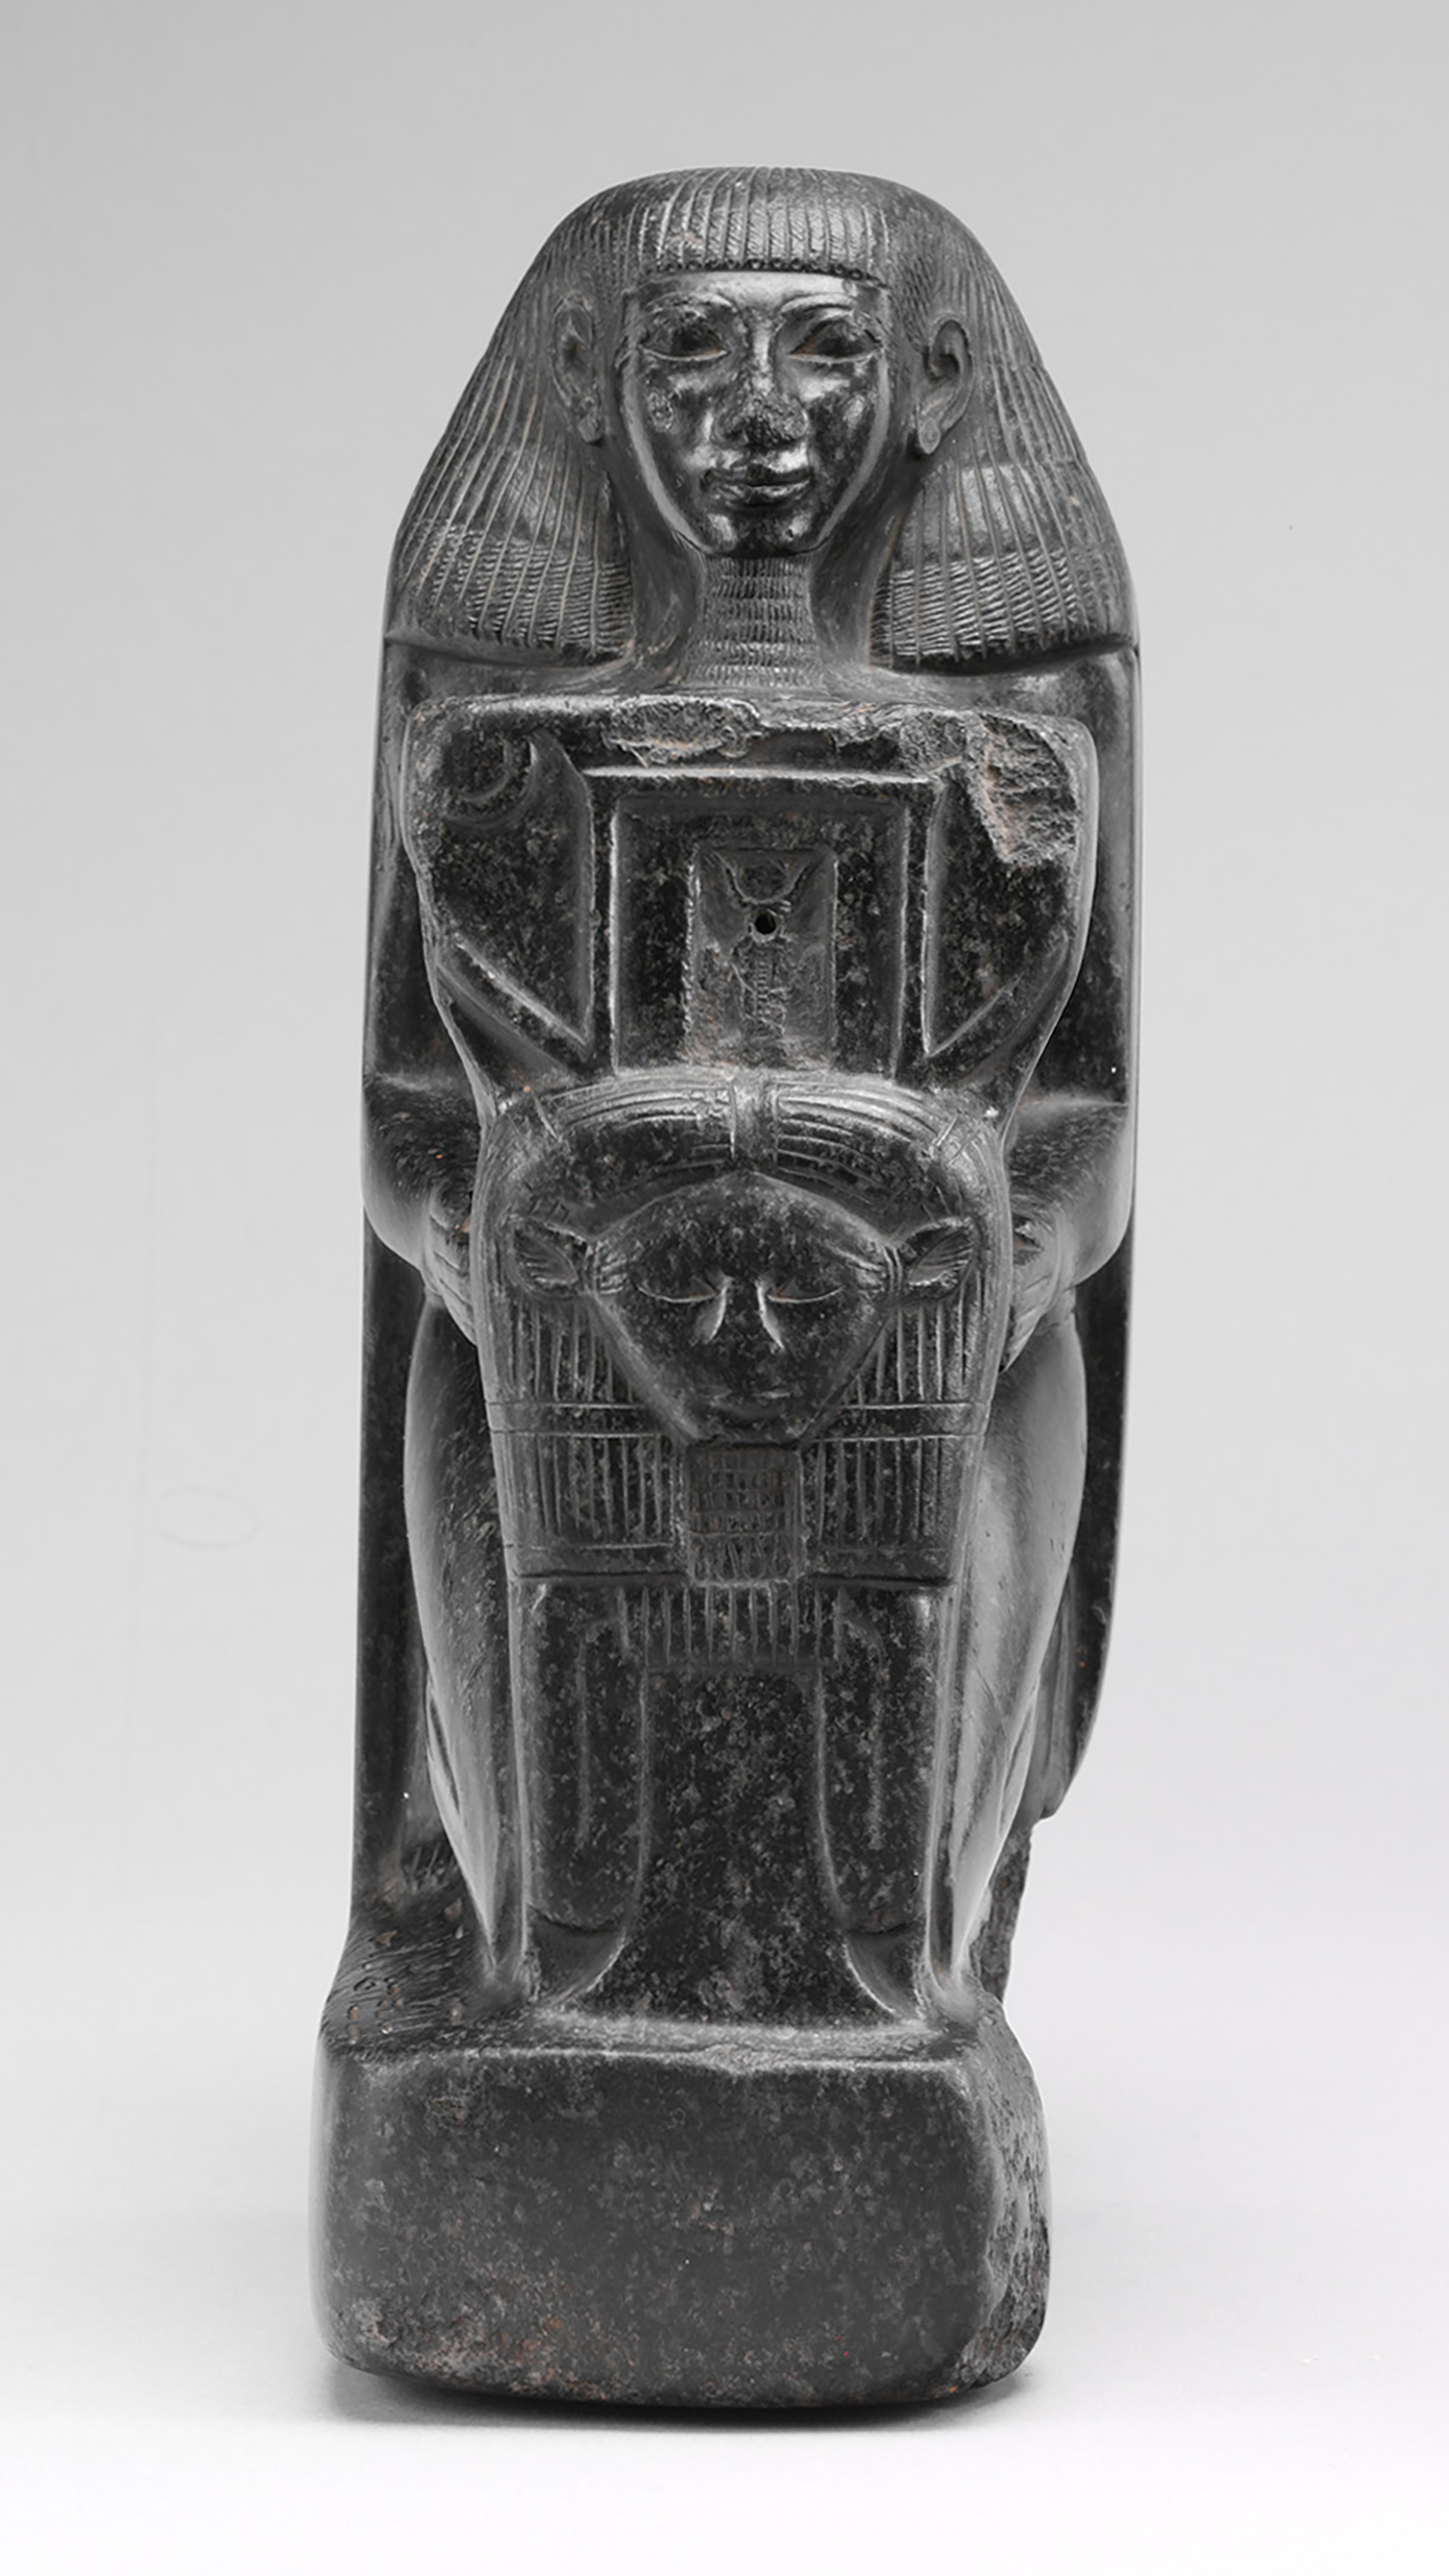 Figure 8: An example of a sisostrous statue. The official, Senmut, holds a sistrum with an image of the goddess Hathor. Photo courtesy of the Metropolitan Museum of Art [48.149.7, Bequest of George D. Pratt, 1935].